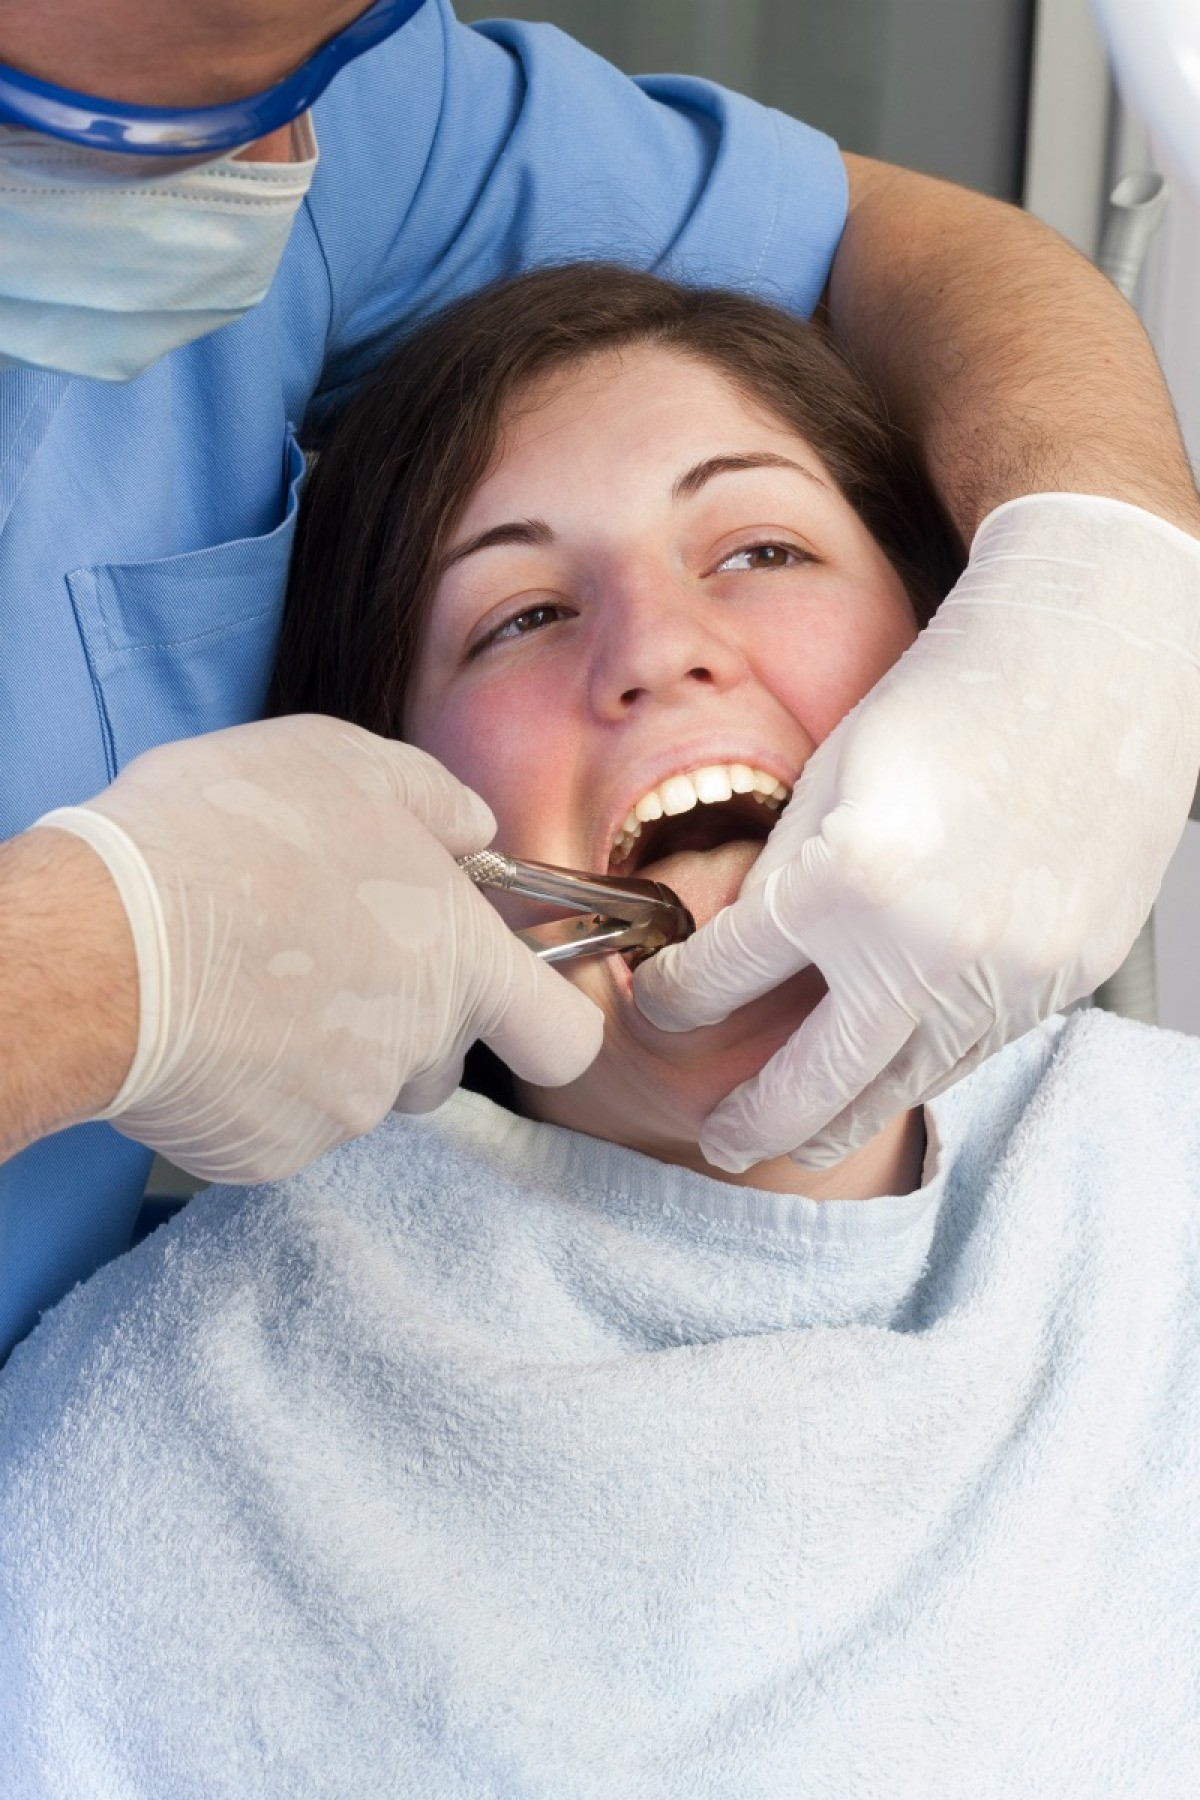 Caring for Your Gums After a Tooth Extraction | ThriftyFun